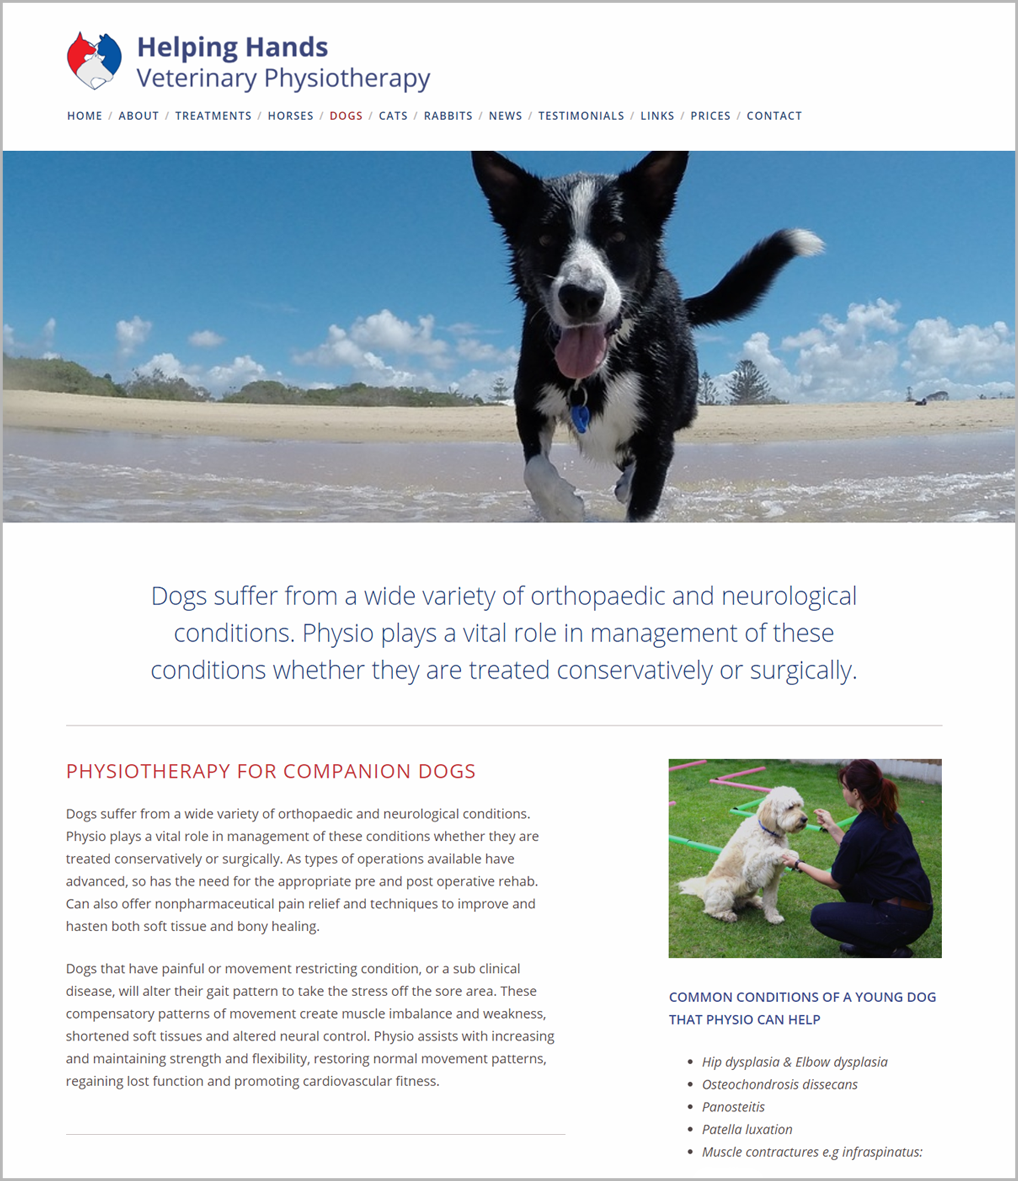 Helping Hands Veterinary Physiotherapy